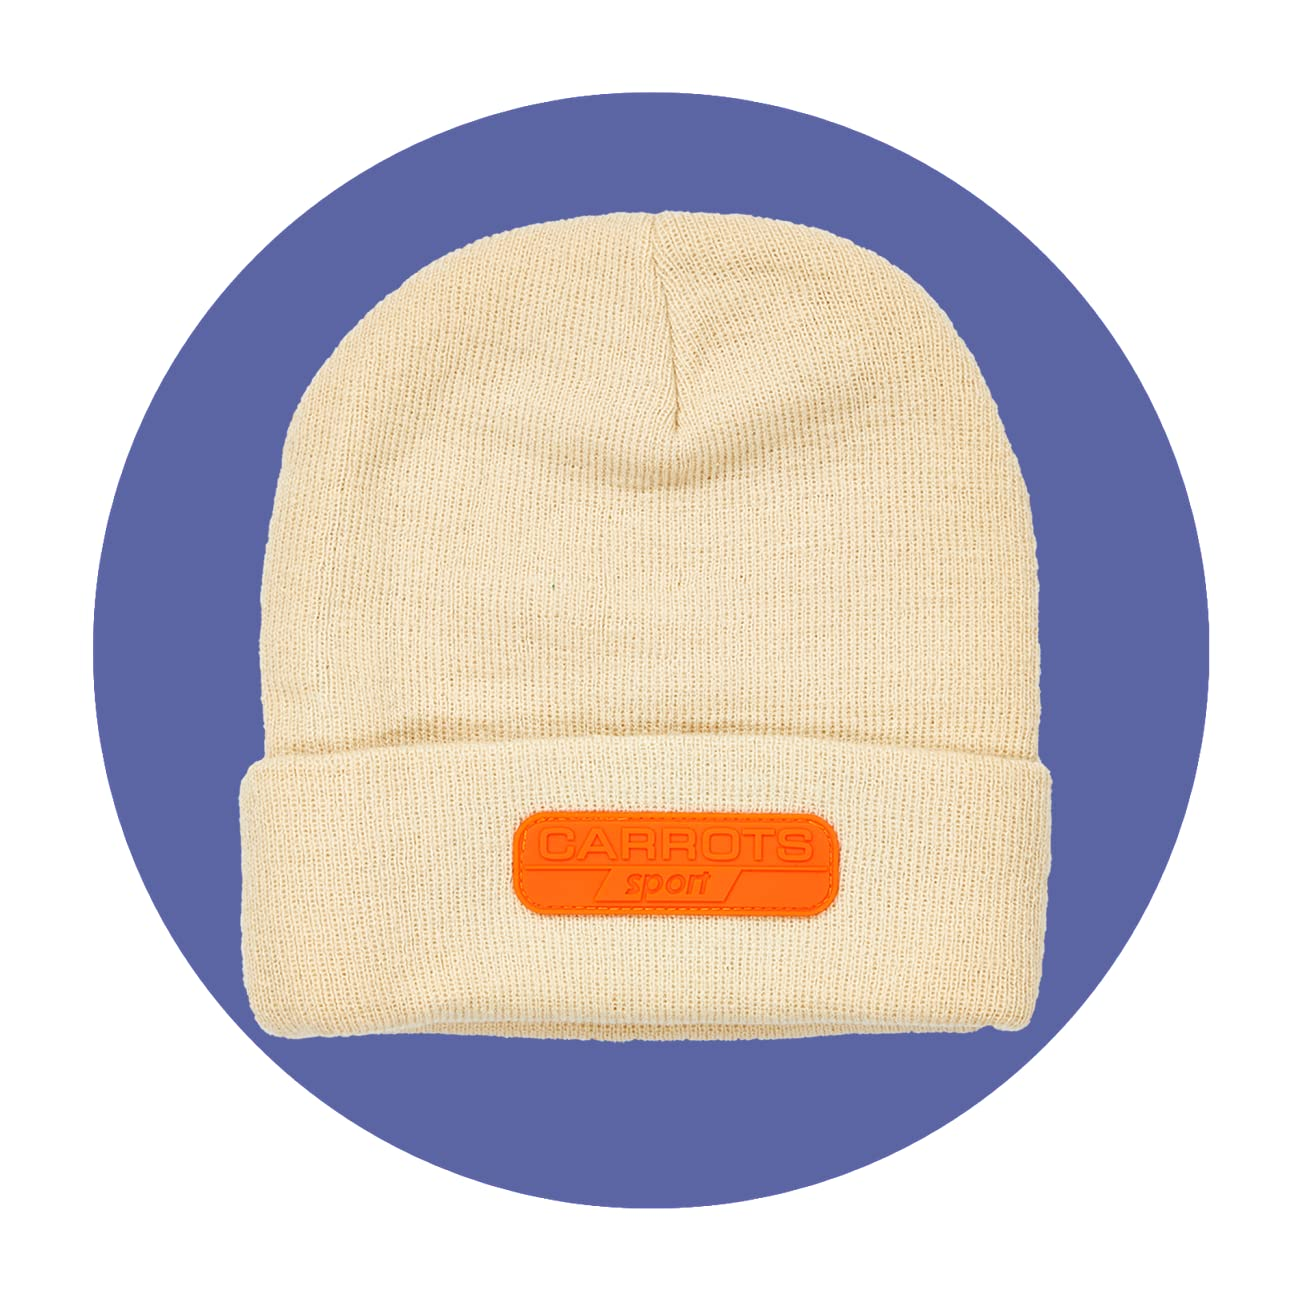 Carrots By Anwar Carrots Sport Rubber Patch Beanie